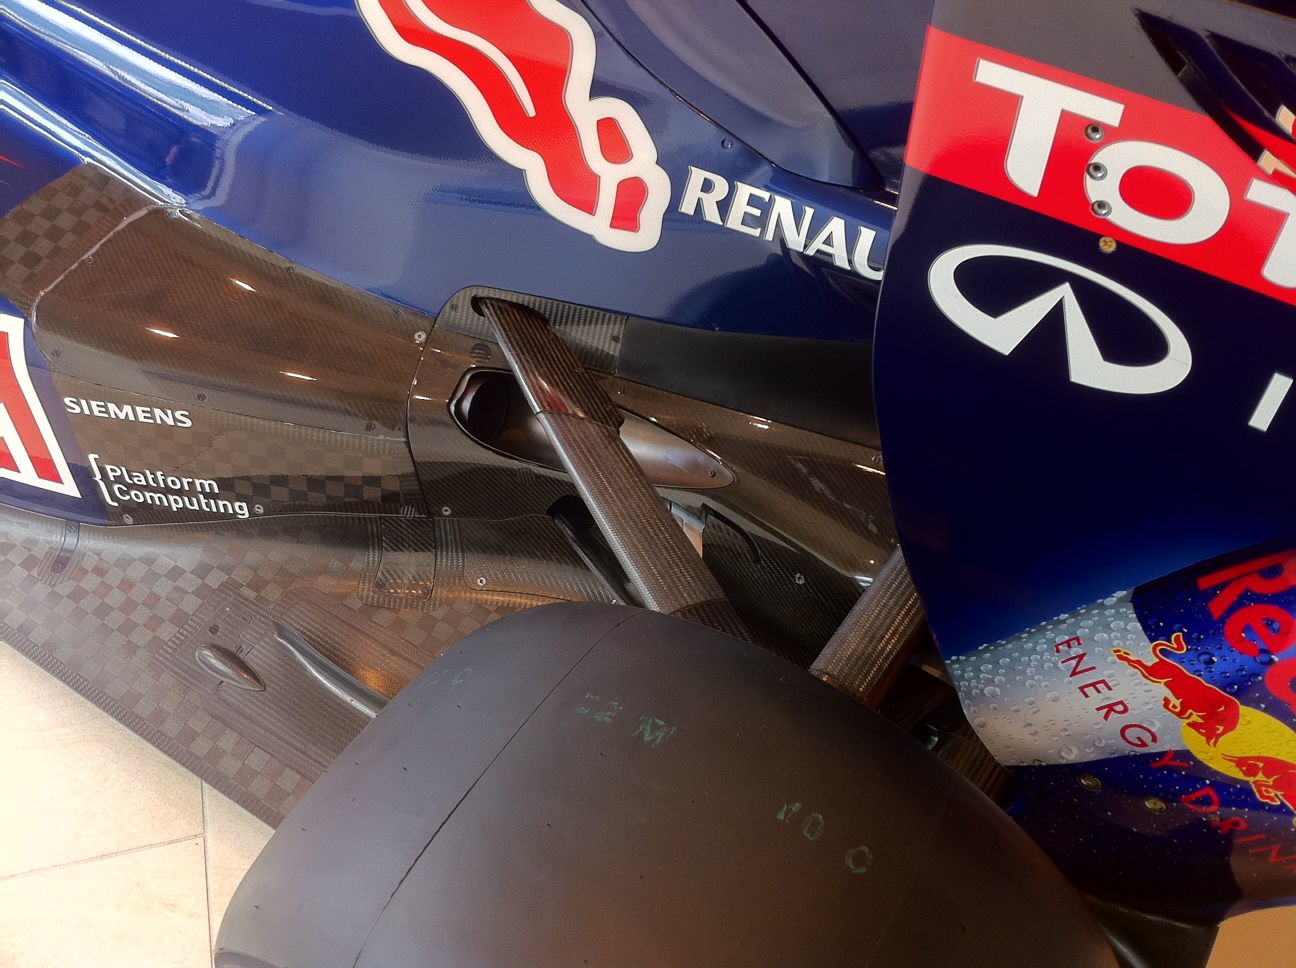 Vettel 2010 F1 Car RB6 in Mayfair London - rear exhaust diffuser